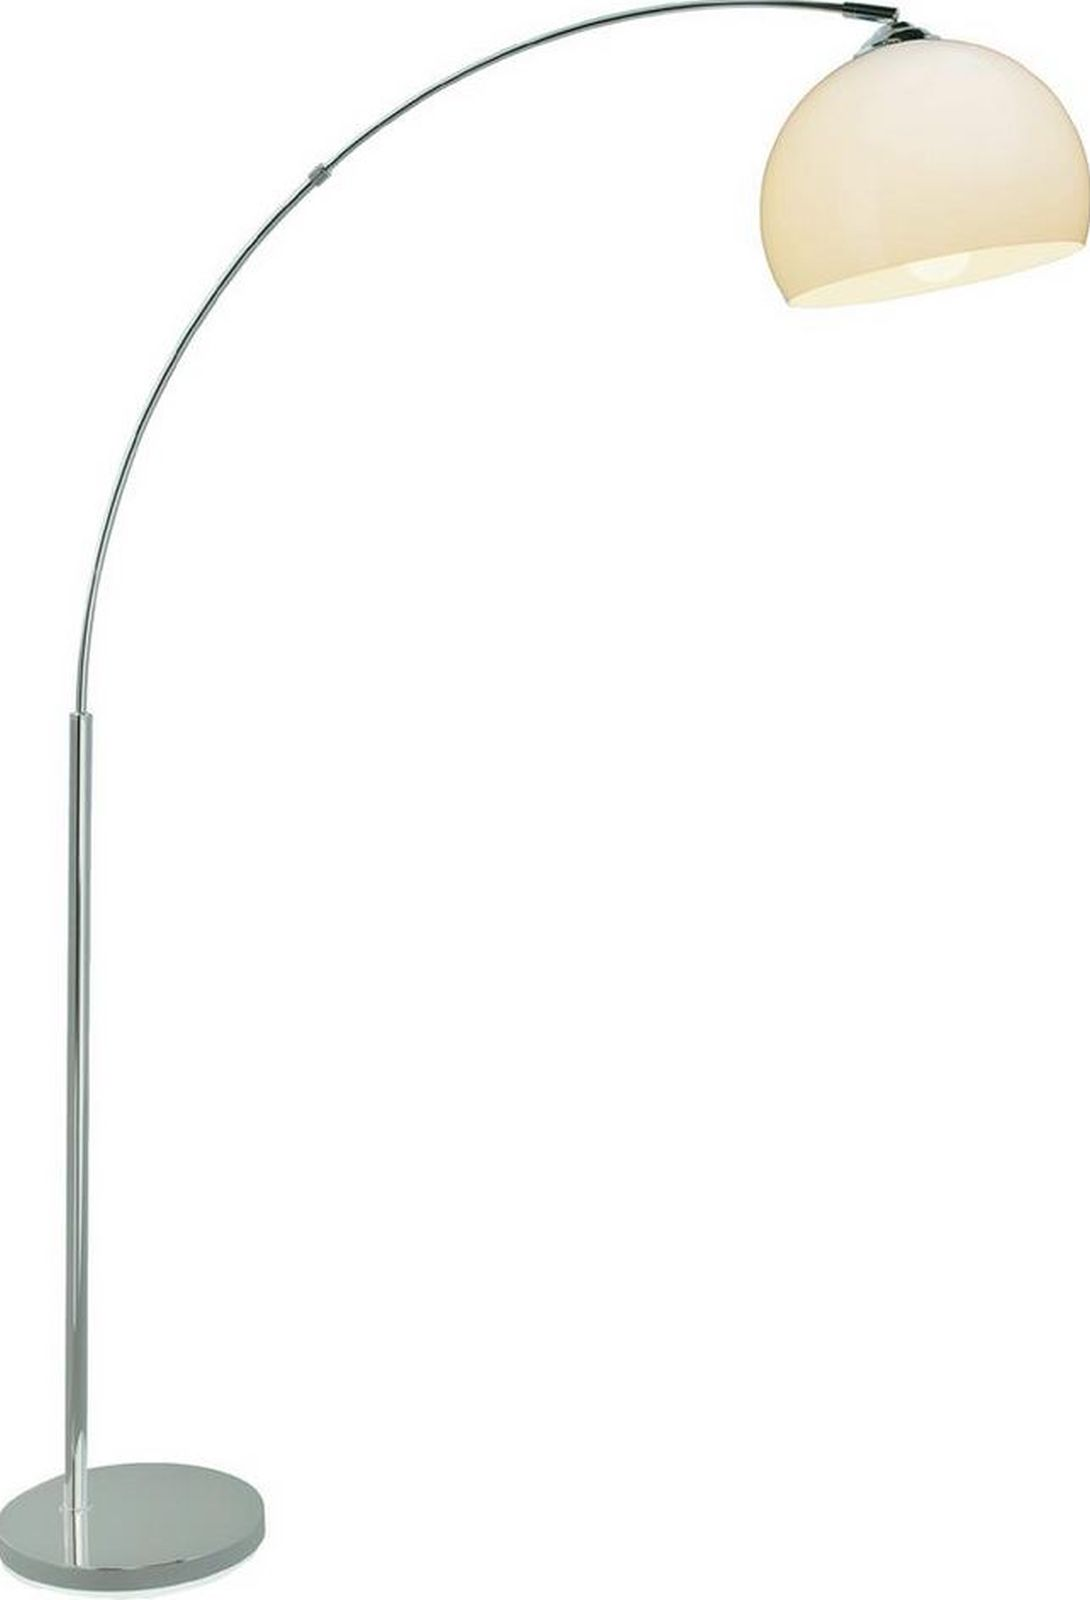 LED-Stehleuchte-Bogenlampe-9-Watt-E27-Peters-Living-Bilbao-HK12669C75